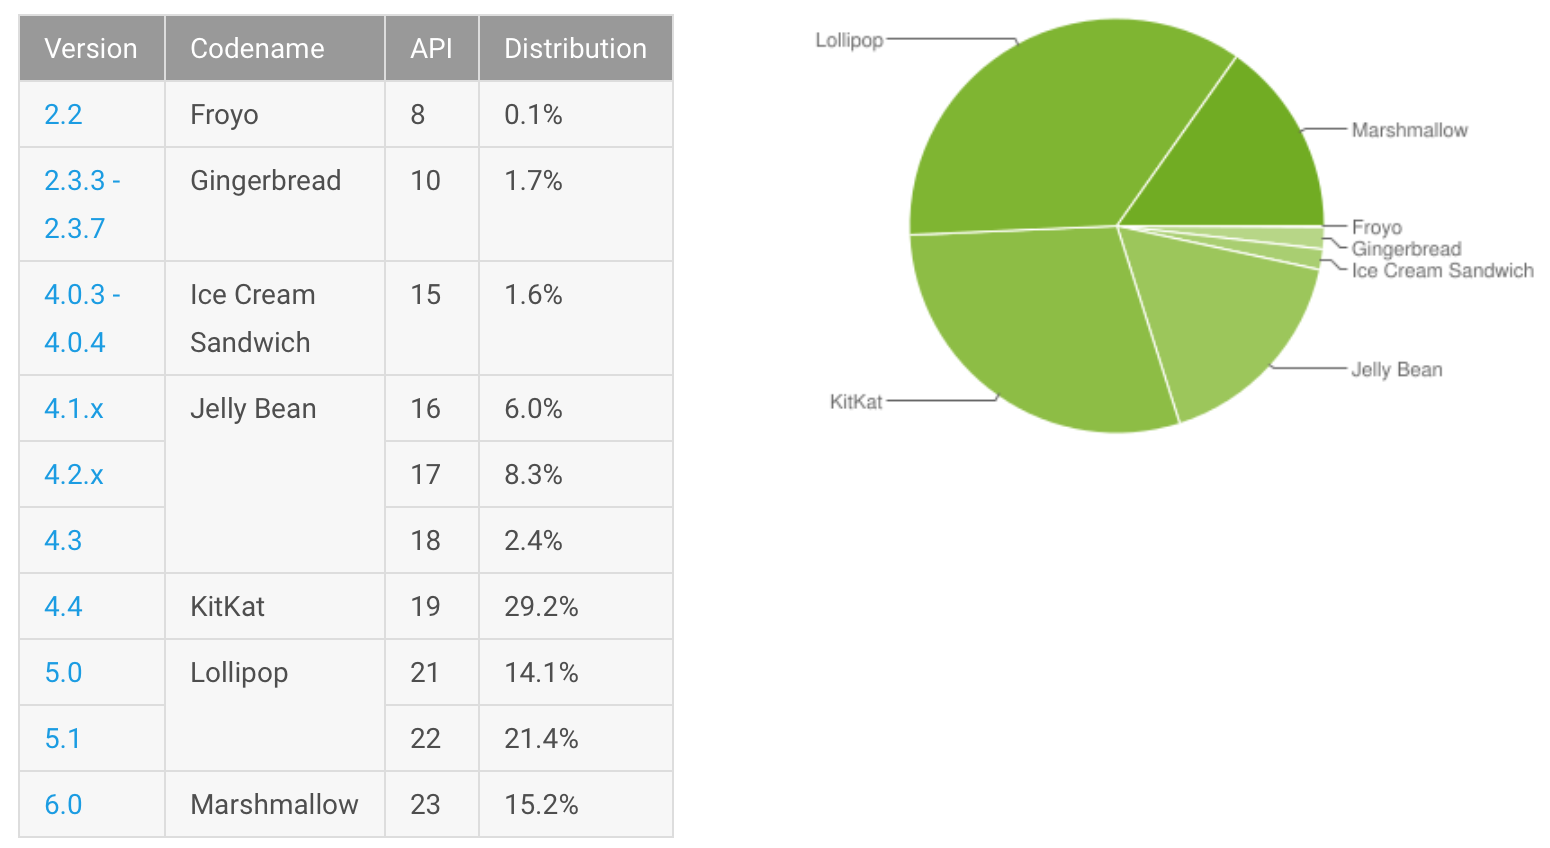 An image showing Android usage statistics